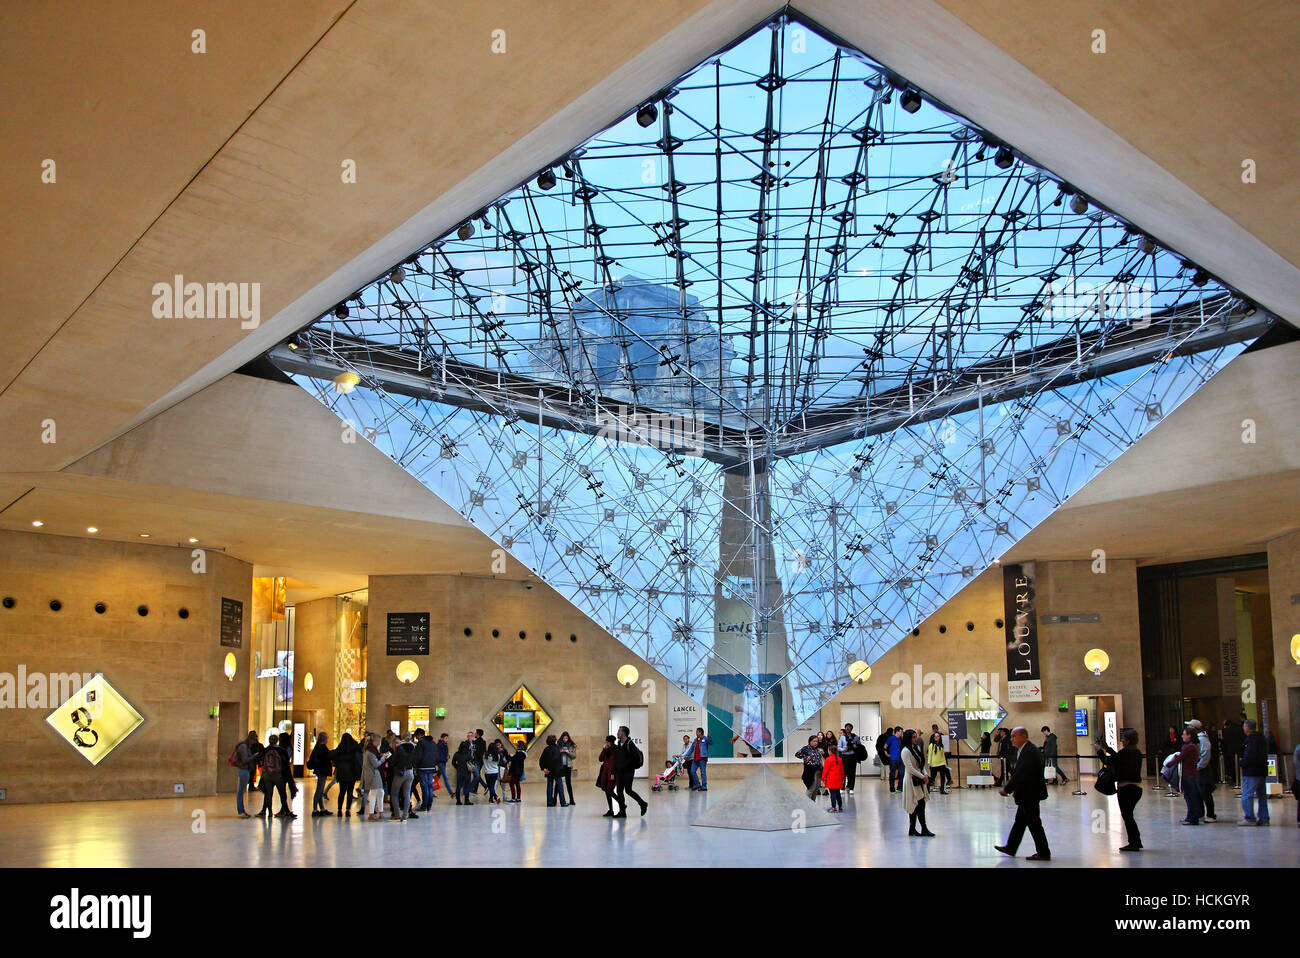 """The """"Carousel du Louvre"""", a shopping center under the ..."""